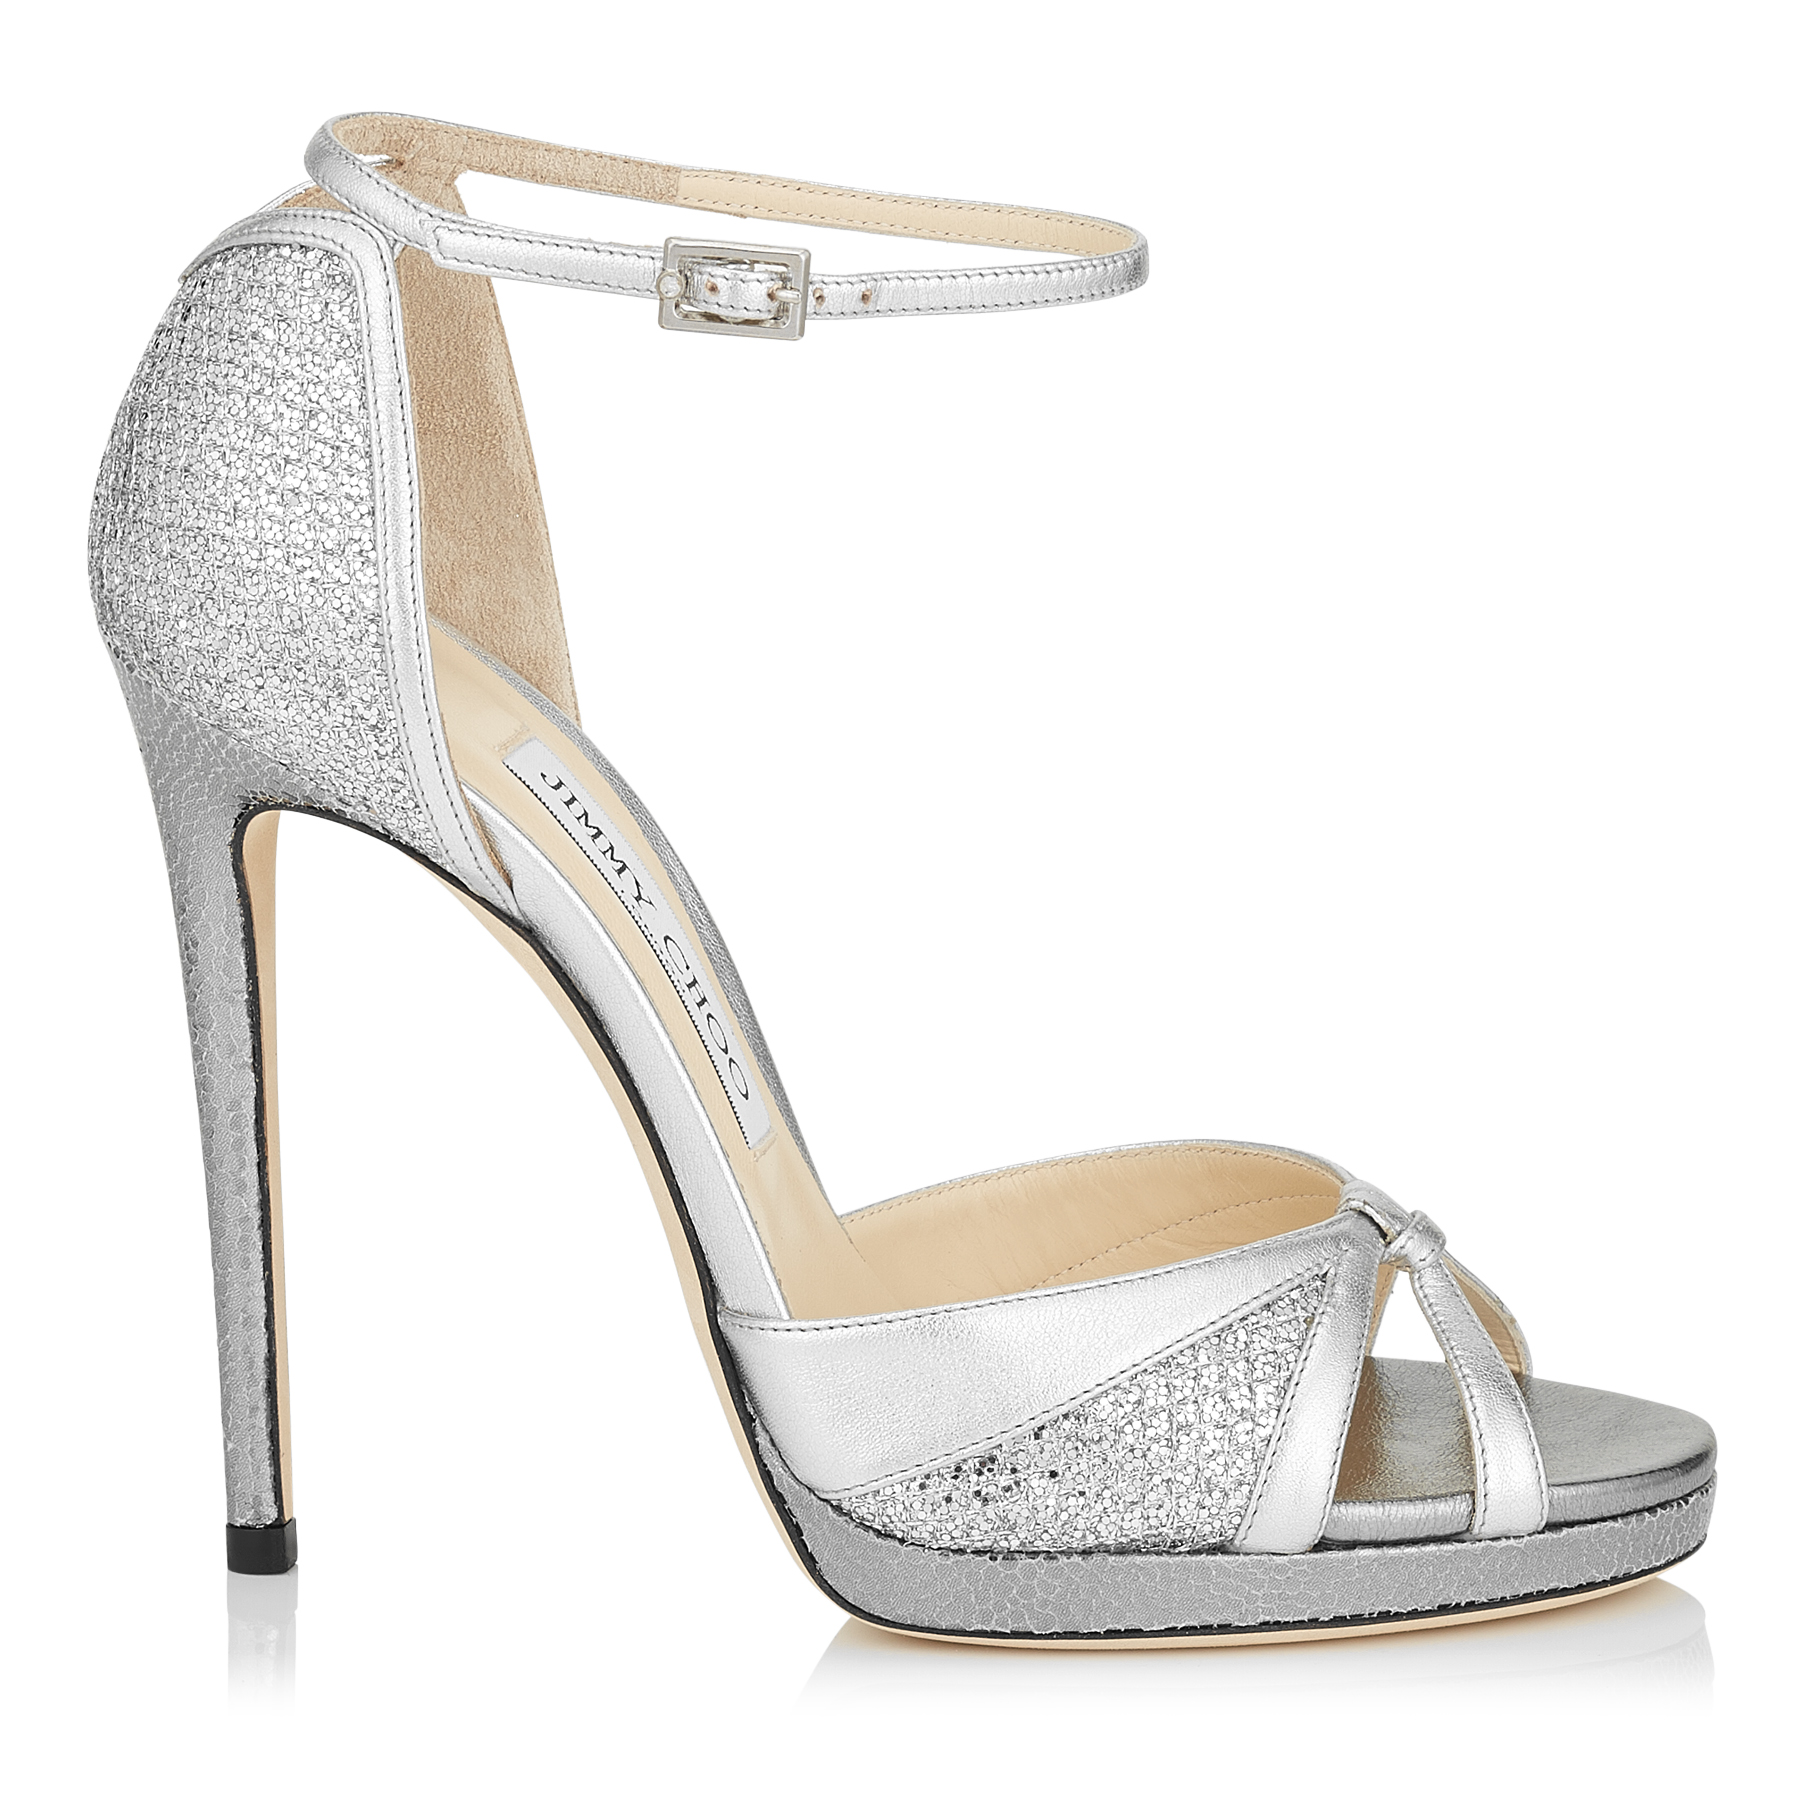 6f5746a83fb jimmy choo shoes wedding